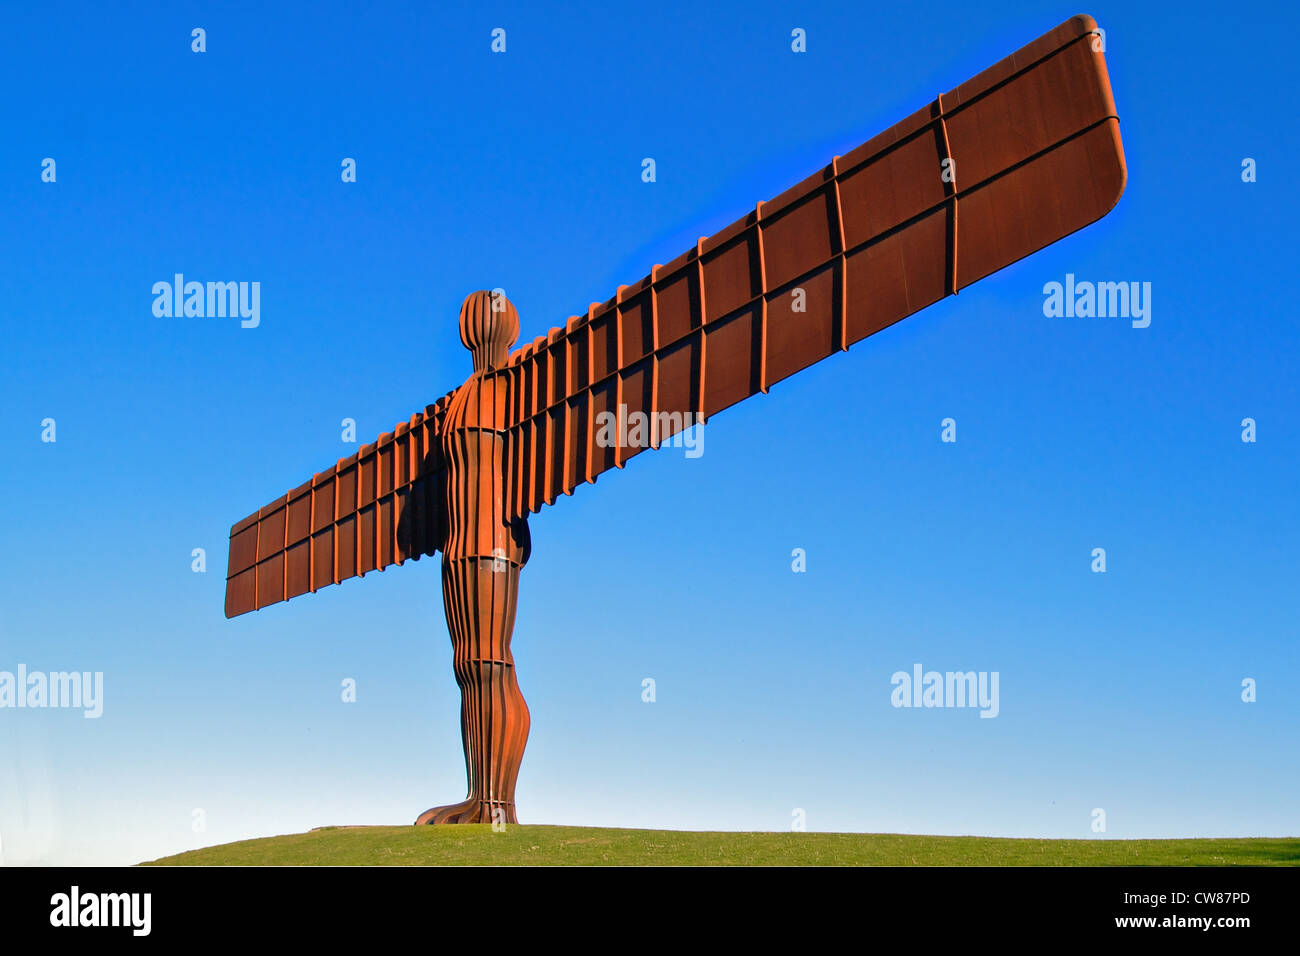 Angel of the North statue in Gateshead, North East England - Stock Image